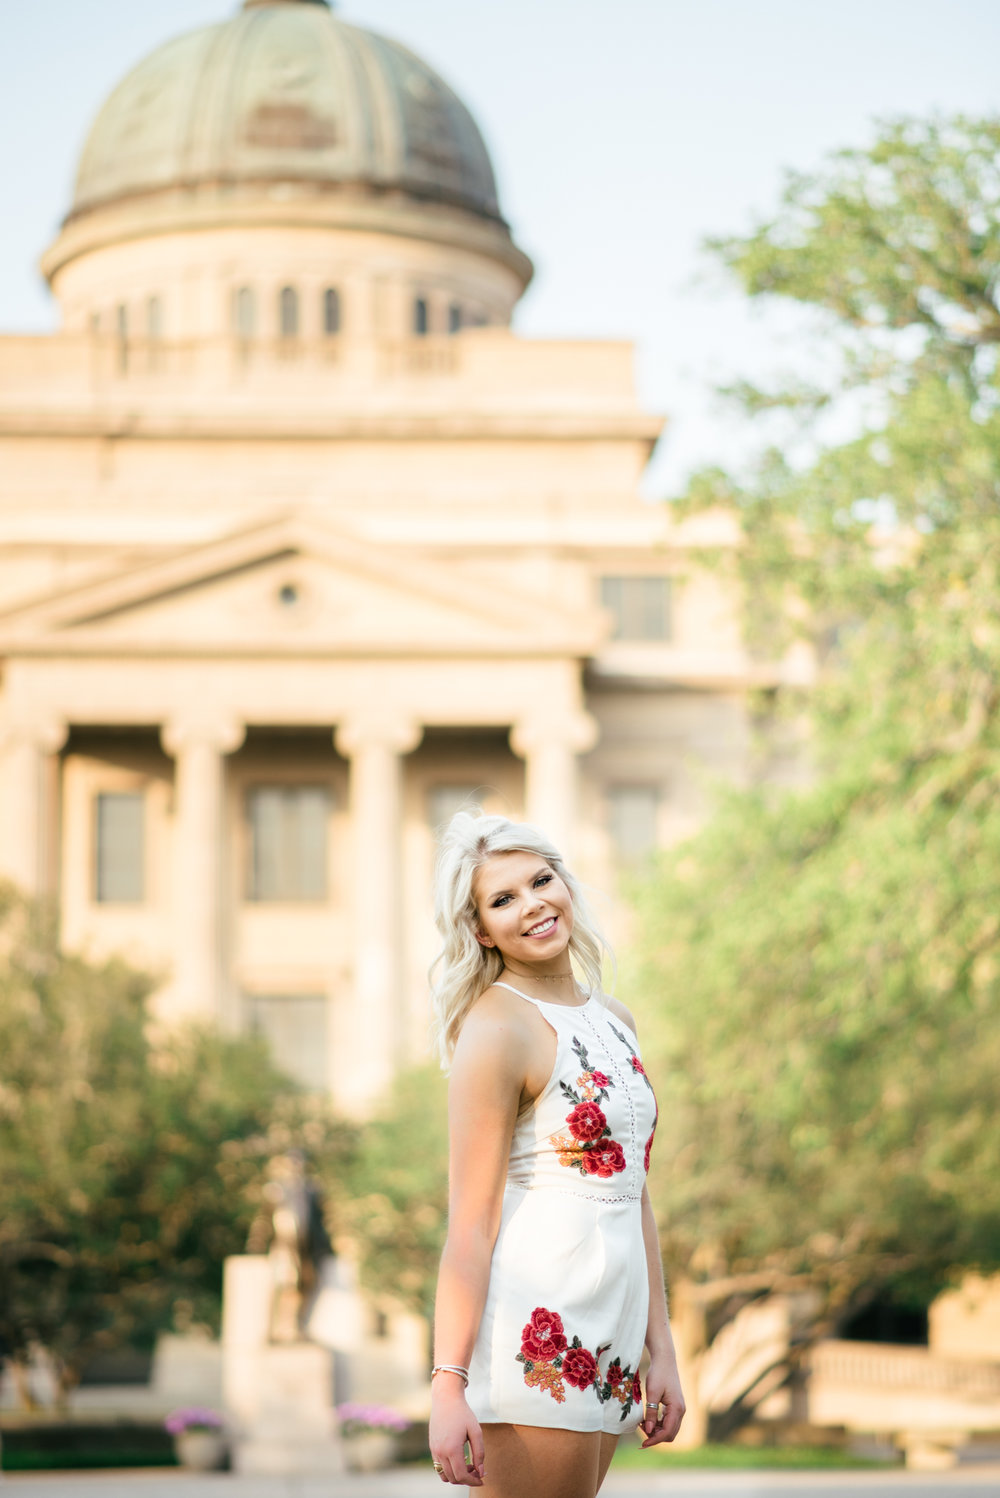 Texas A&M University senior